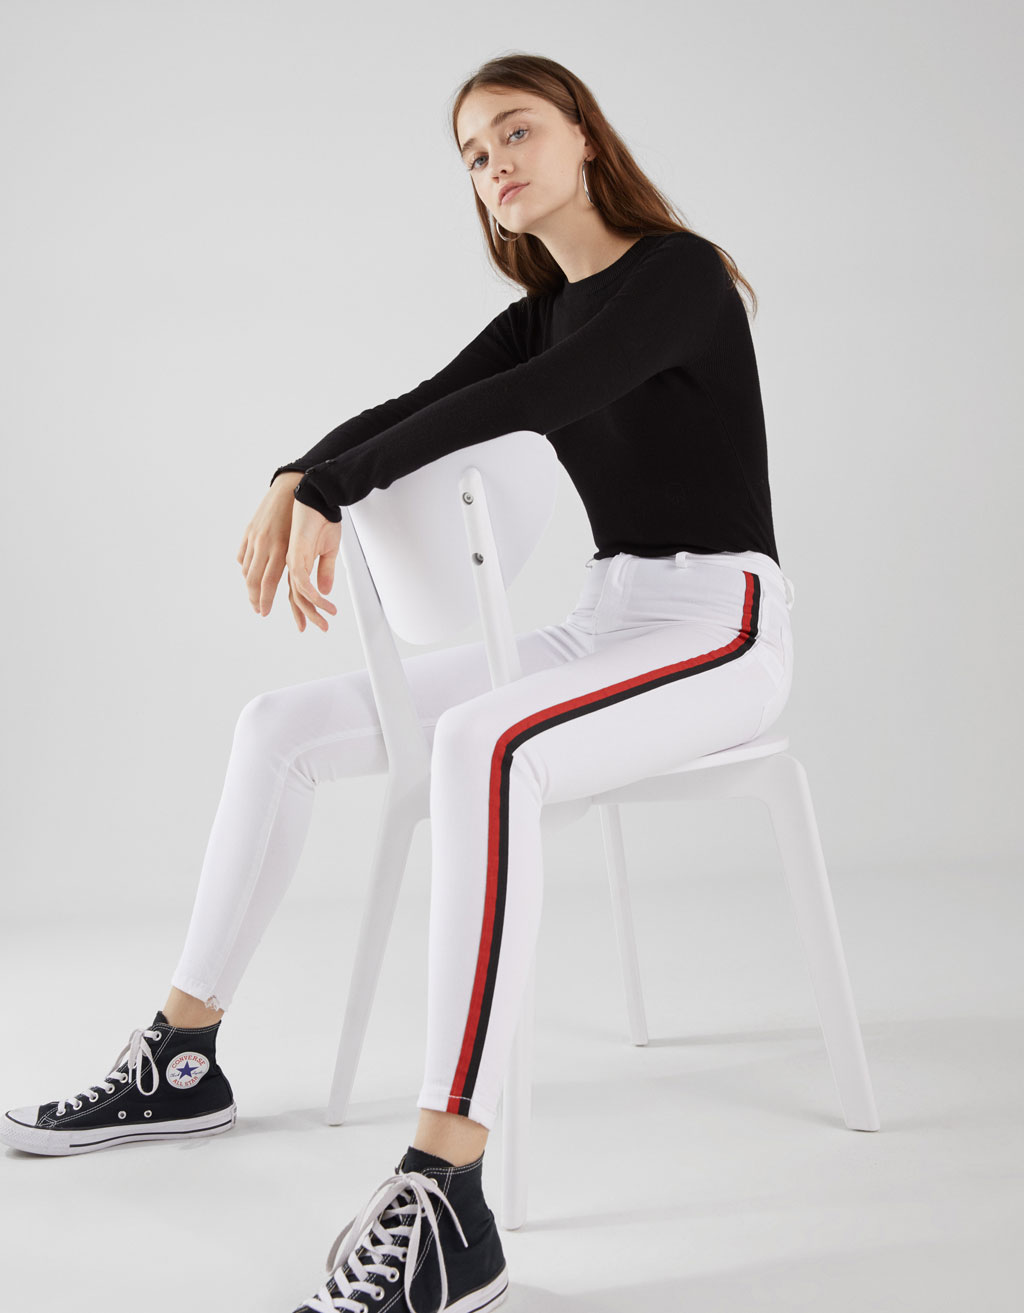 Mid-rise trousers with side stripes